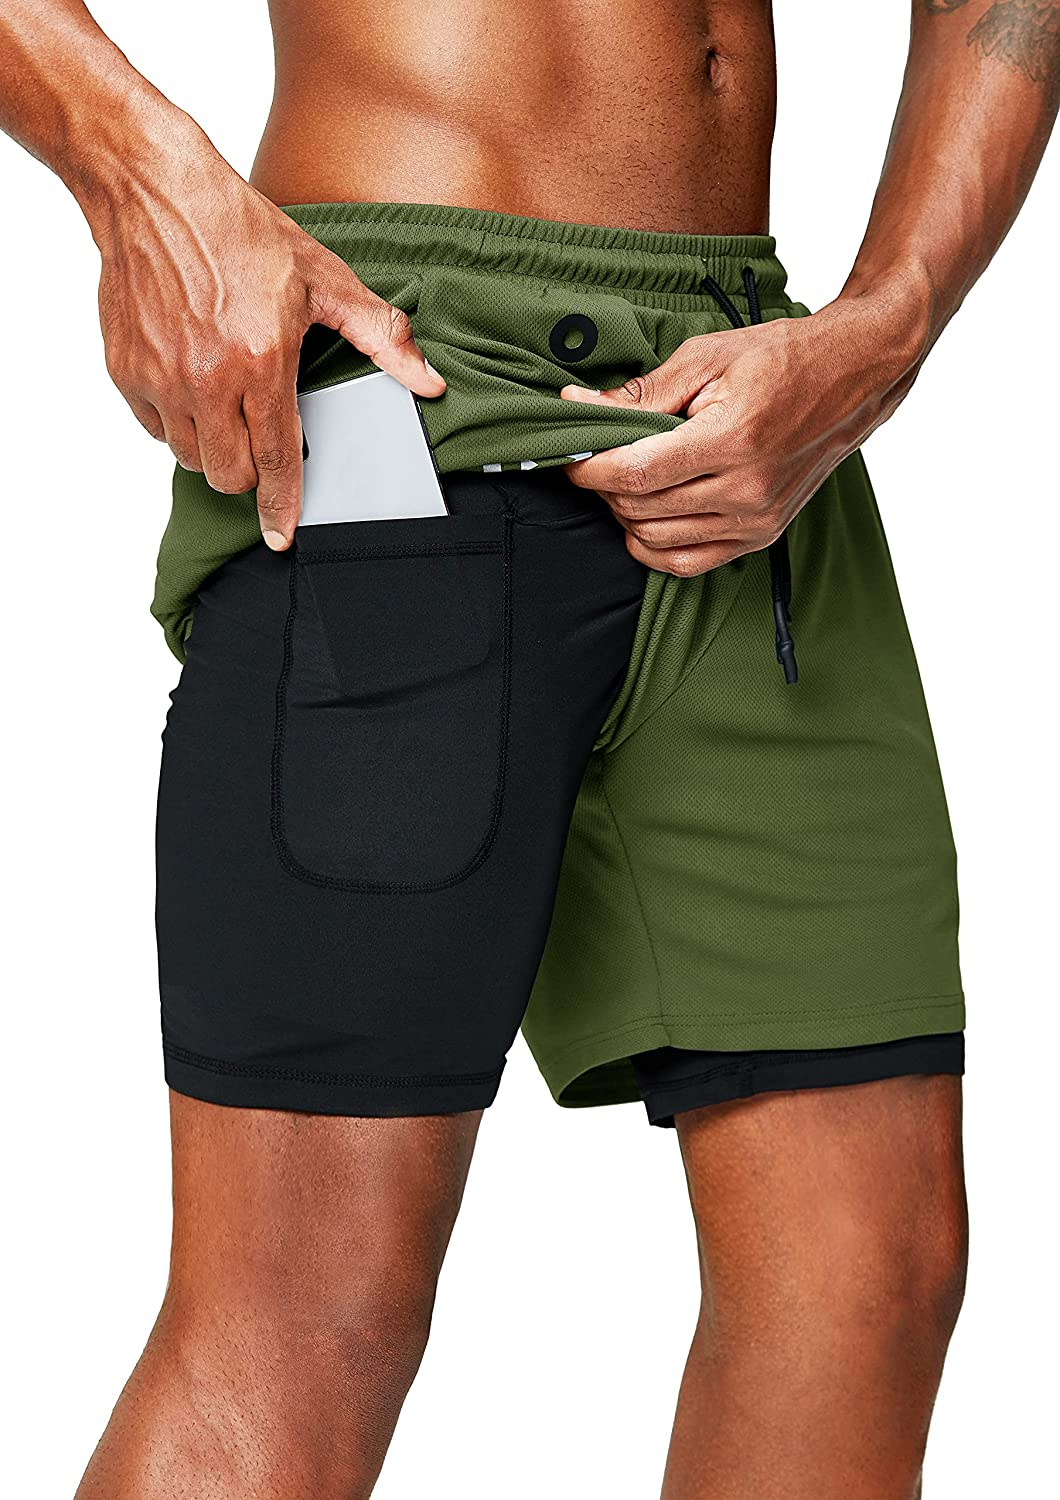 Pinkbomb Men's 2 in 1 Running Shorts with Phone Pocket Gym Workout Quick Dry Mens Shorts 5 Inch